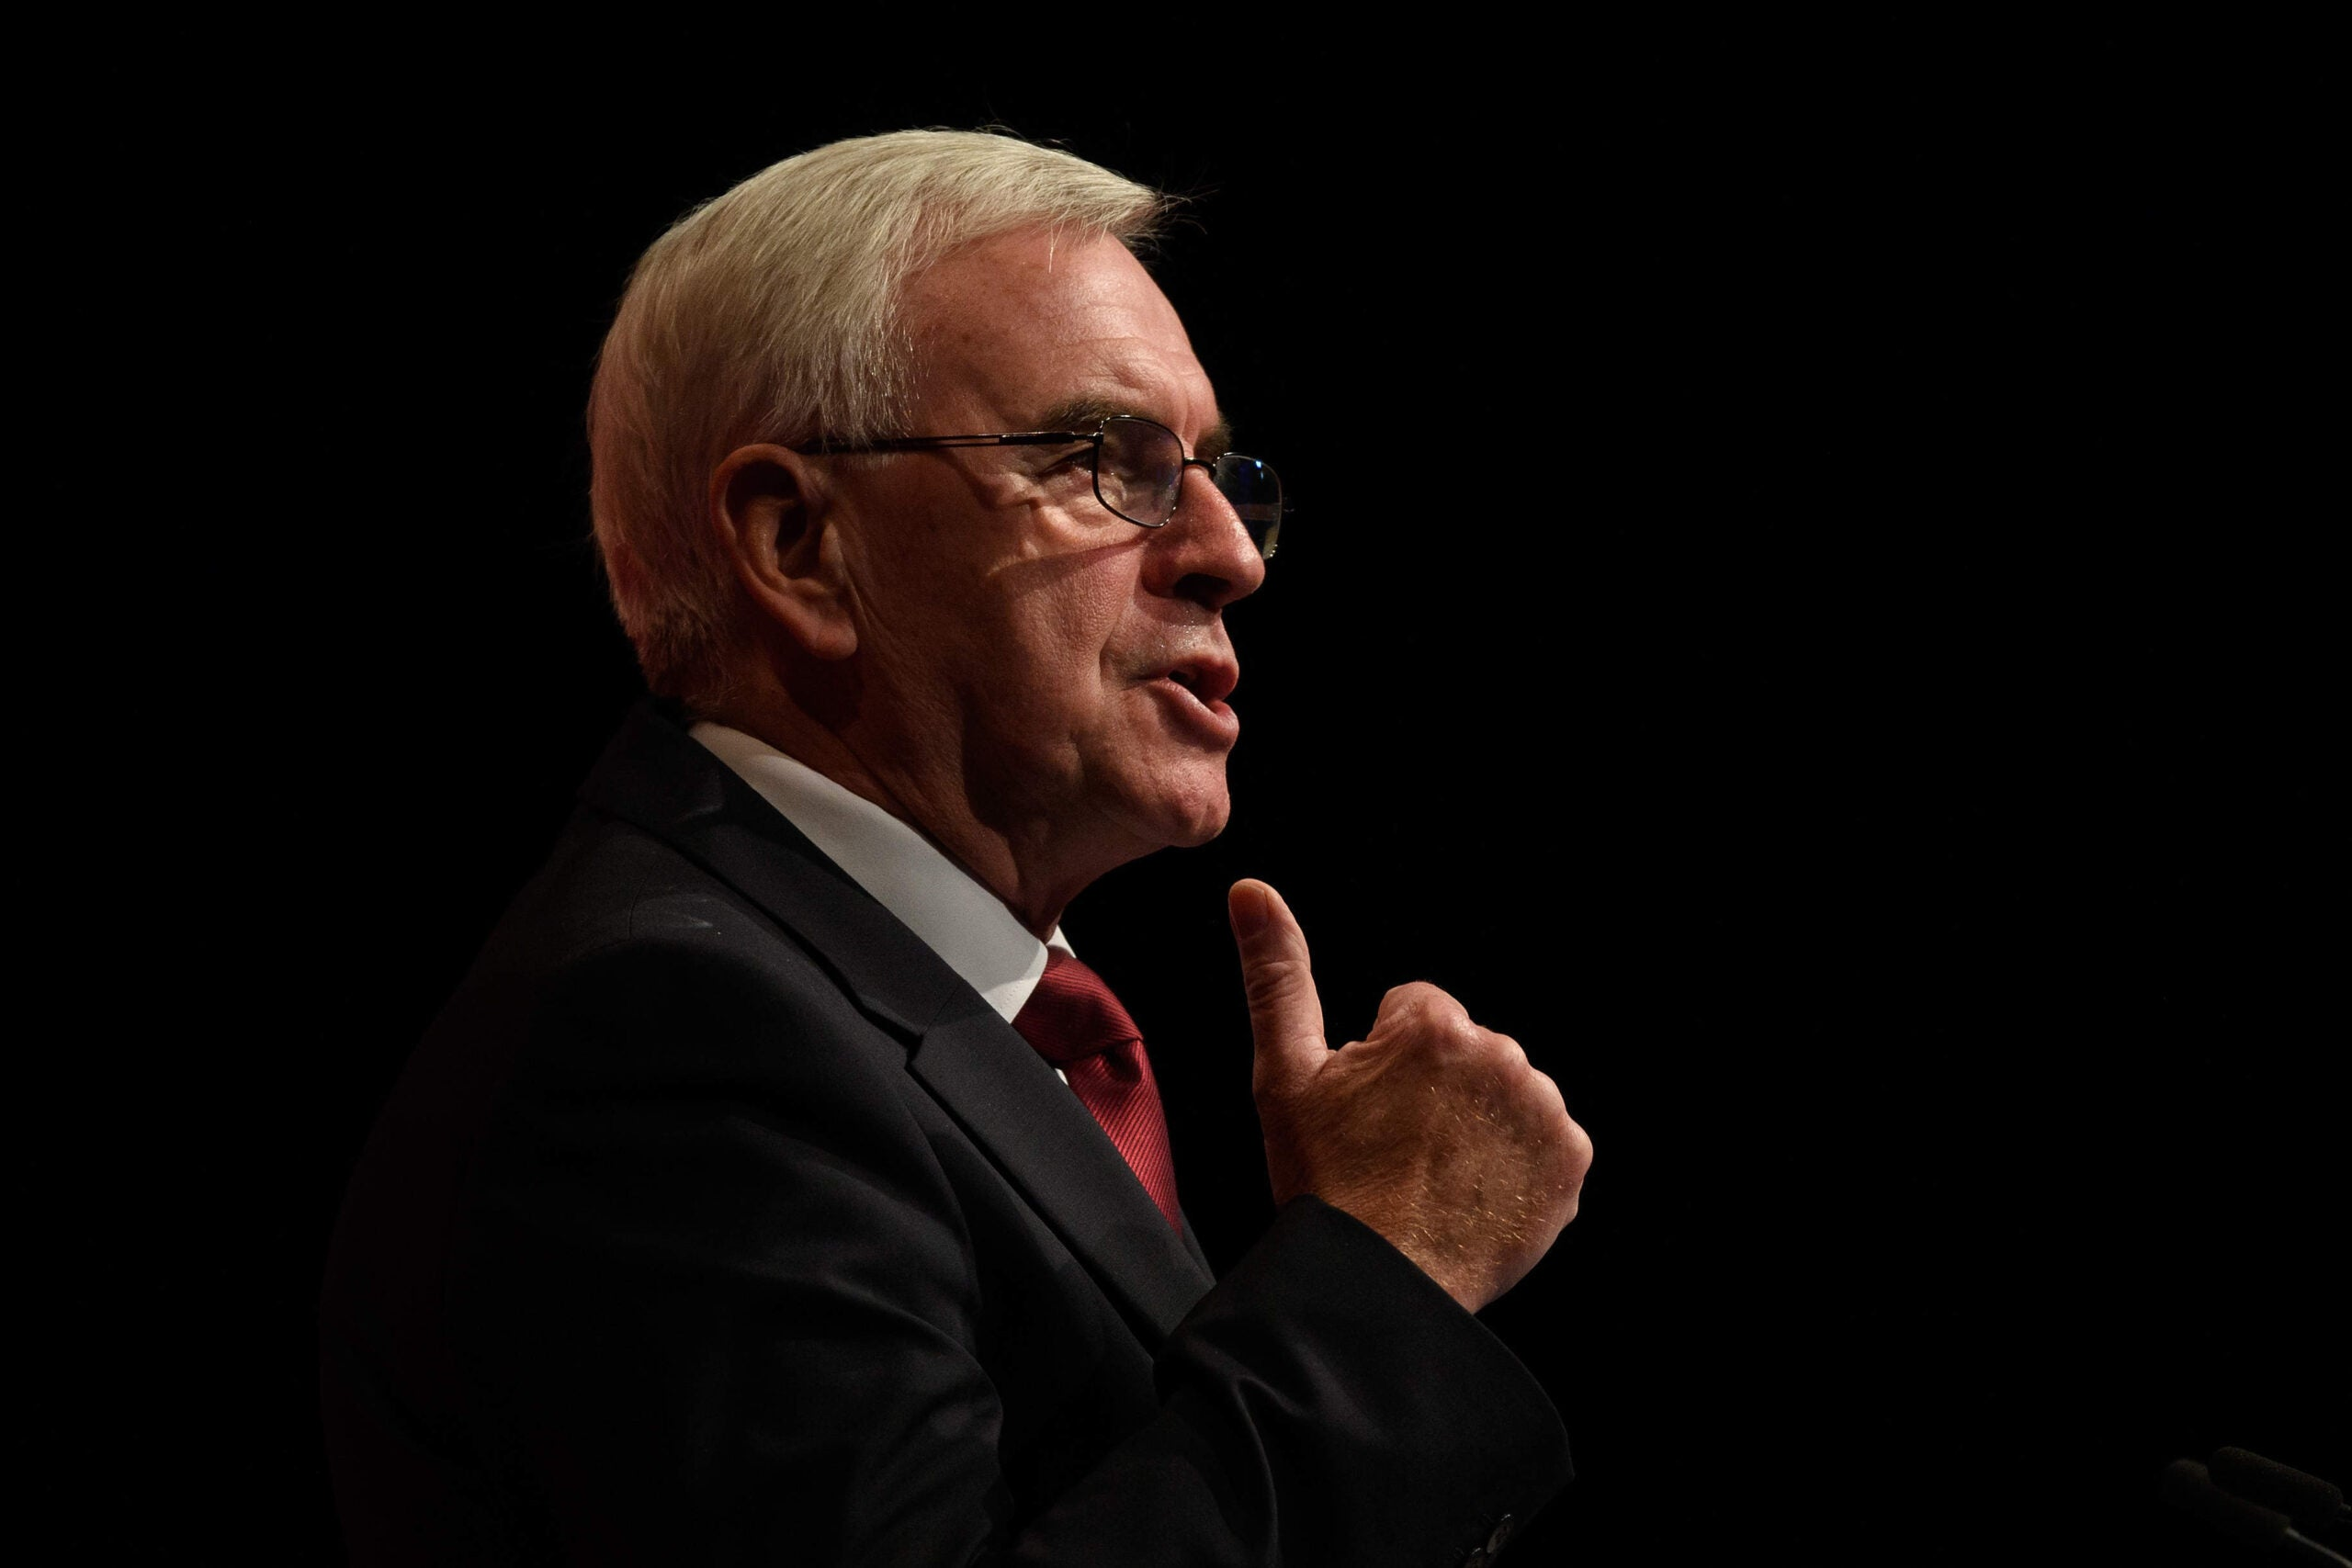 John McDonnell: Labour will not raise taxes for ordinary workers